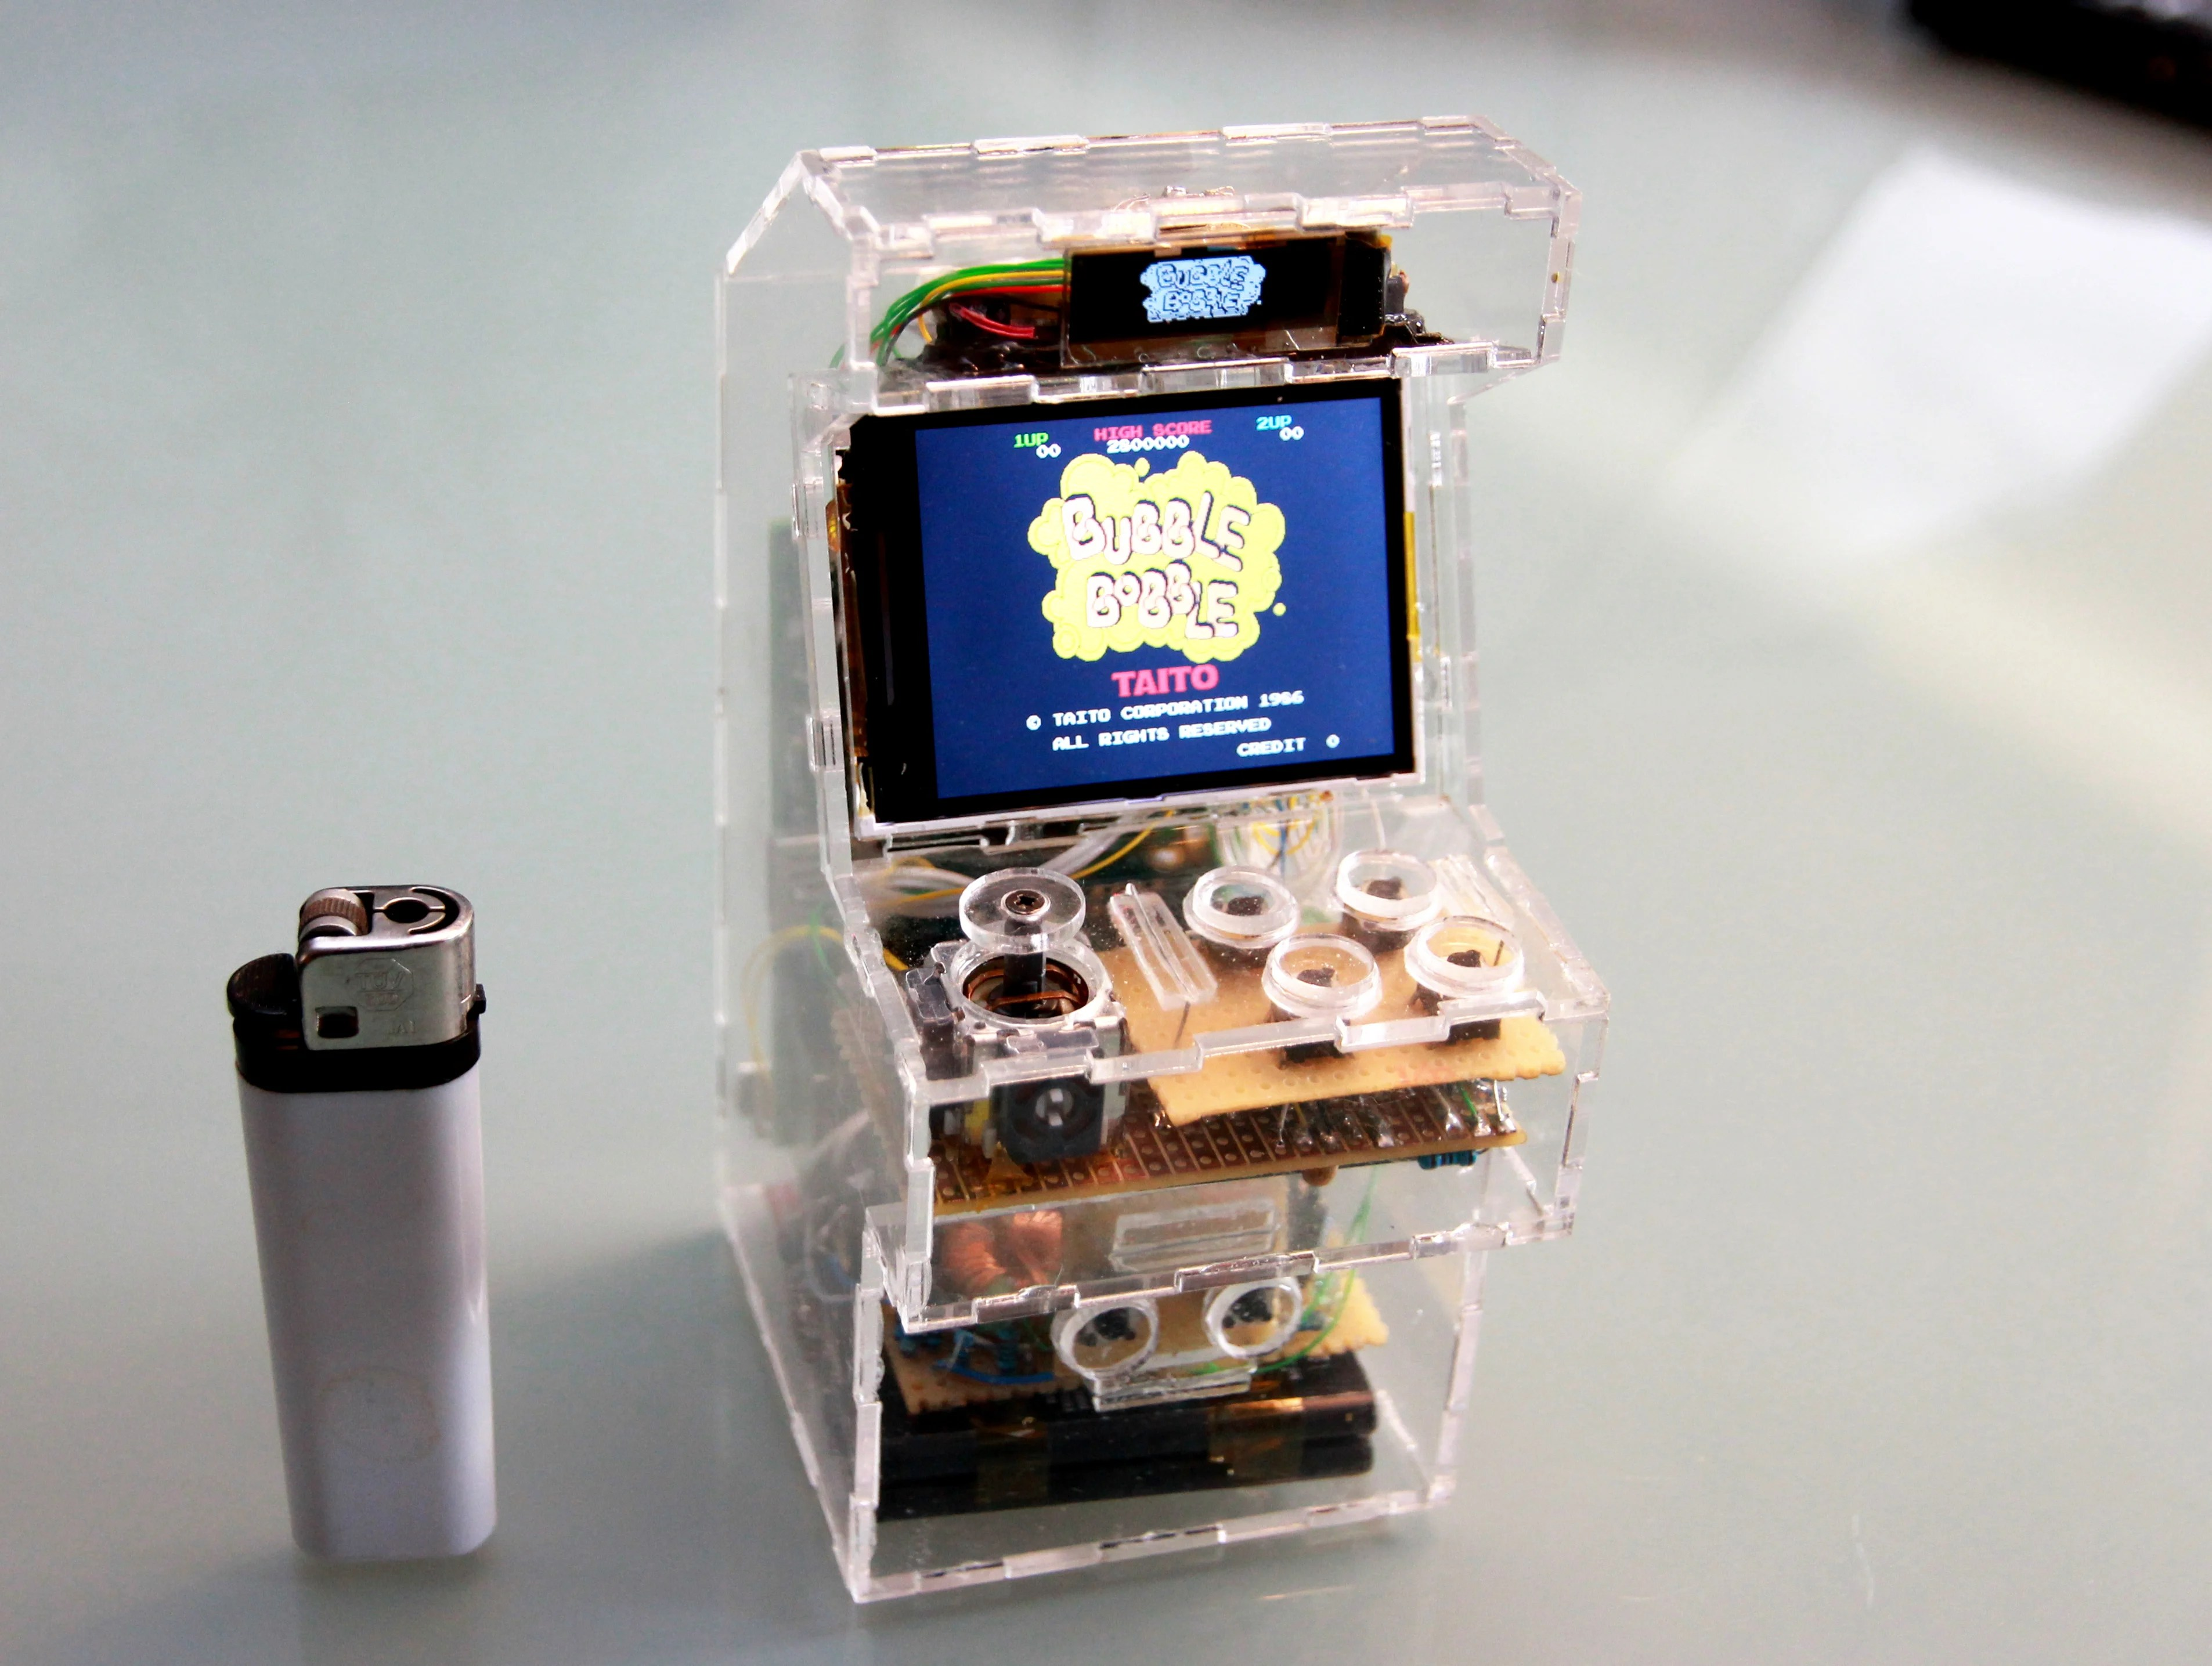 Cool Machines To Build 10 Diy Arcade Projects That You 39ll Want To Make Make